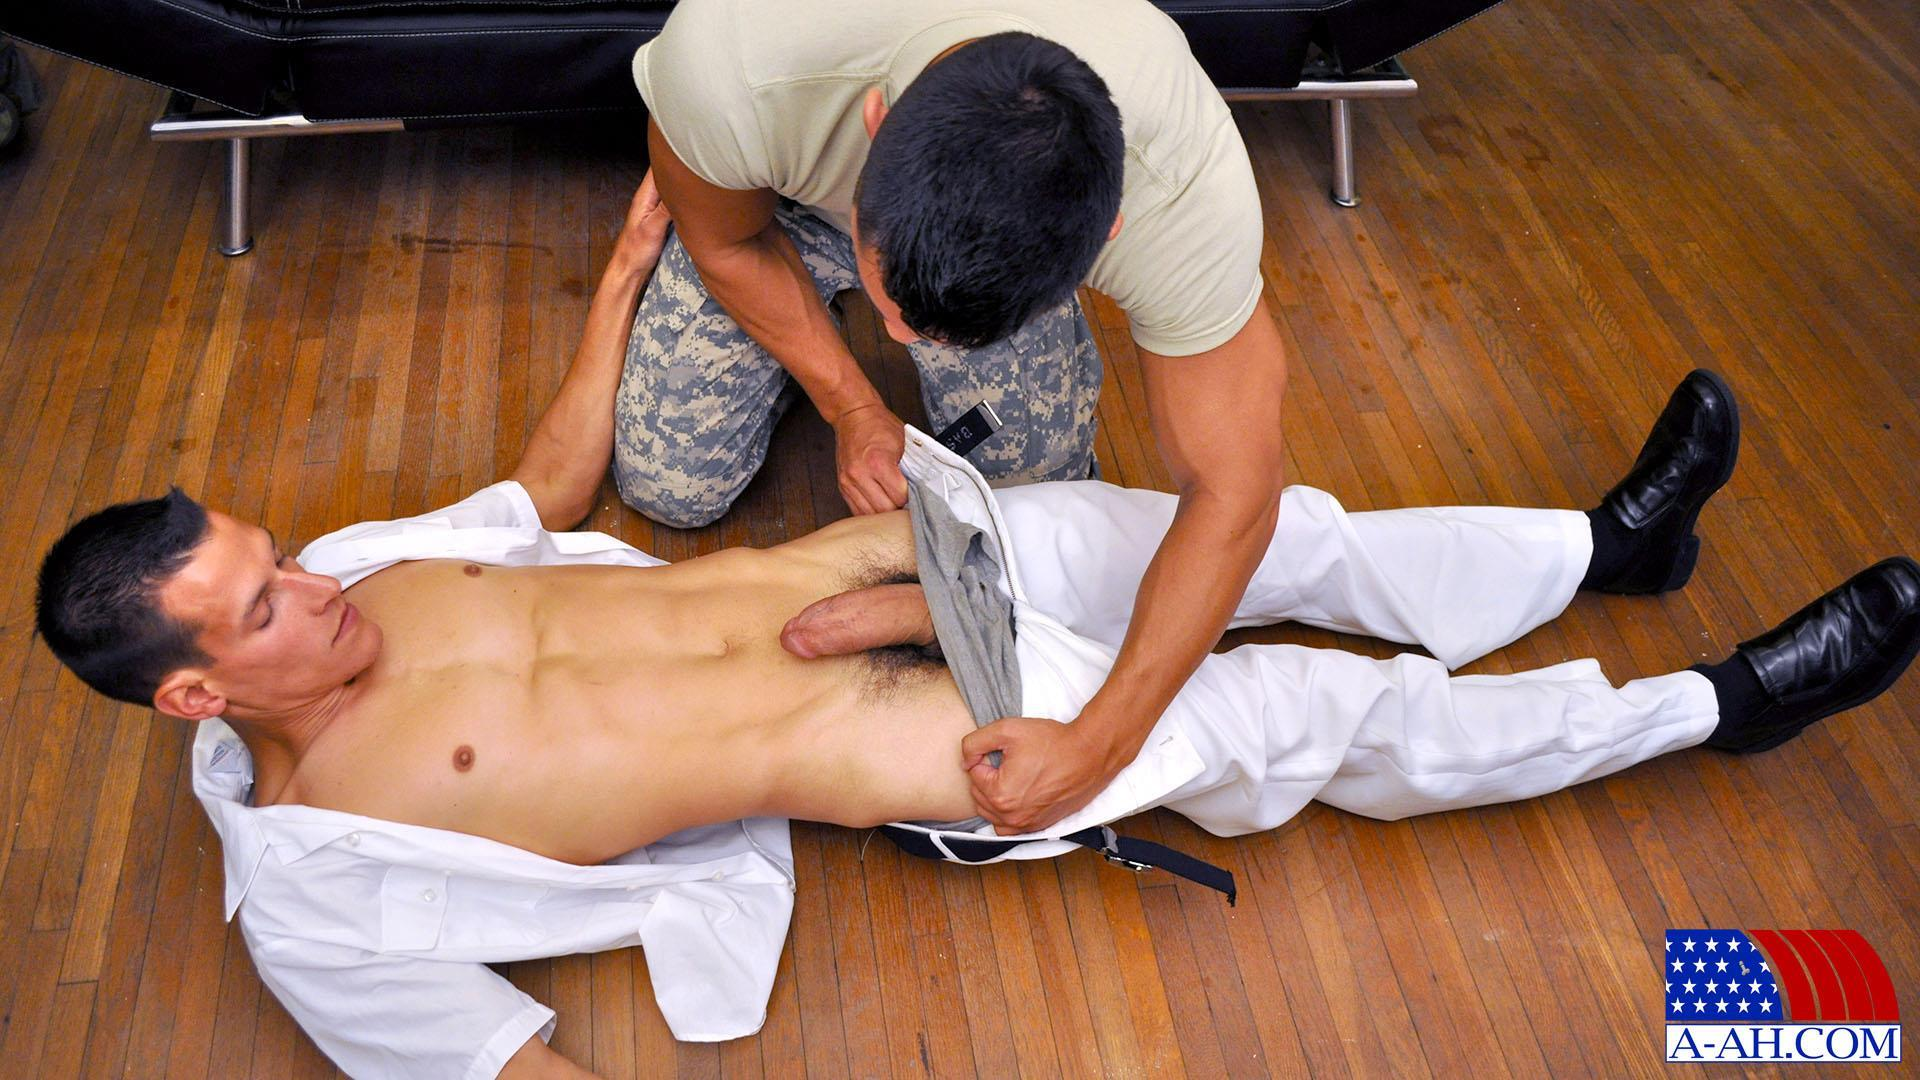 Real straight army men doing gay porn first